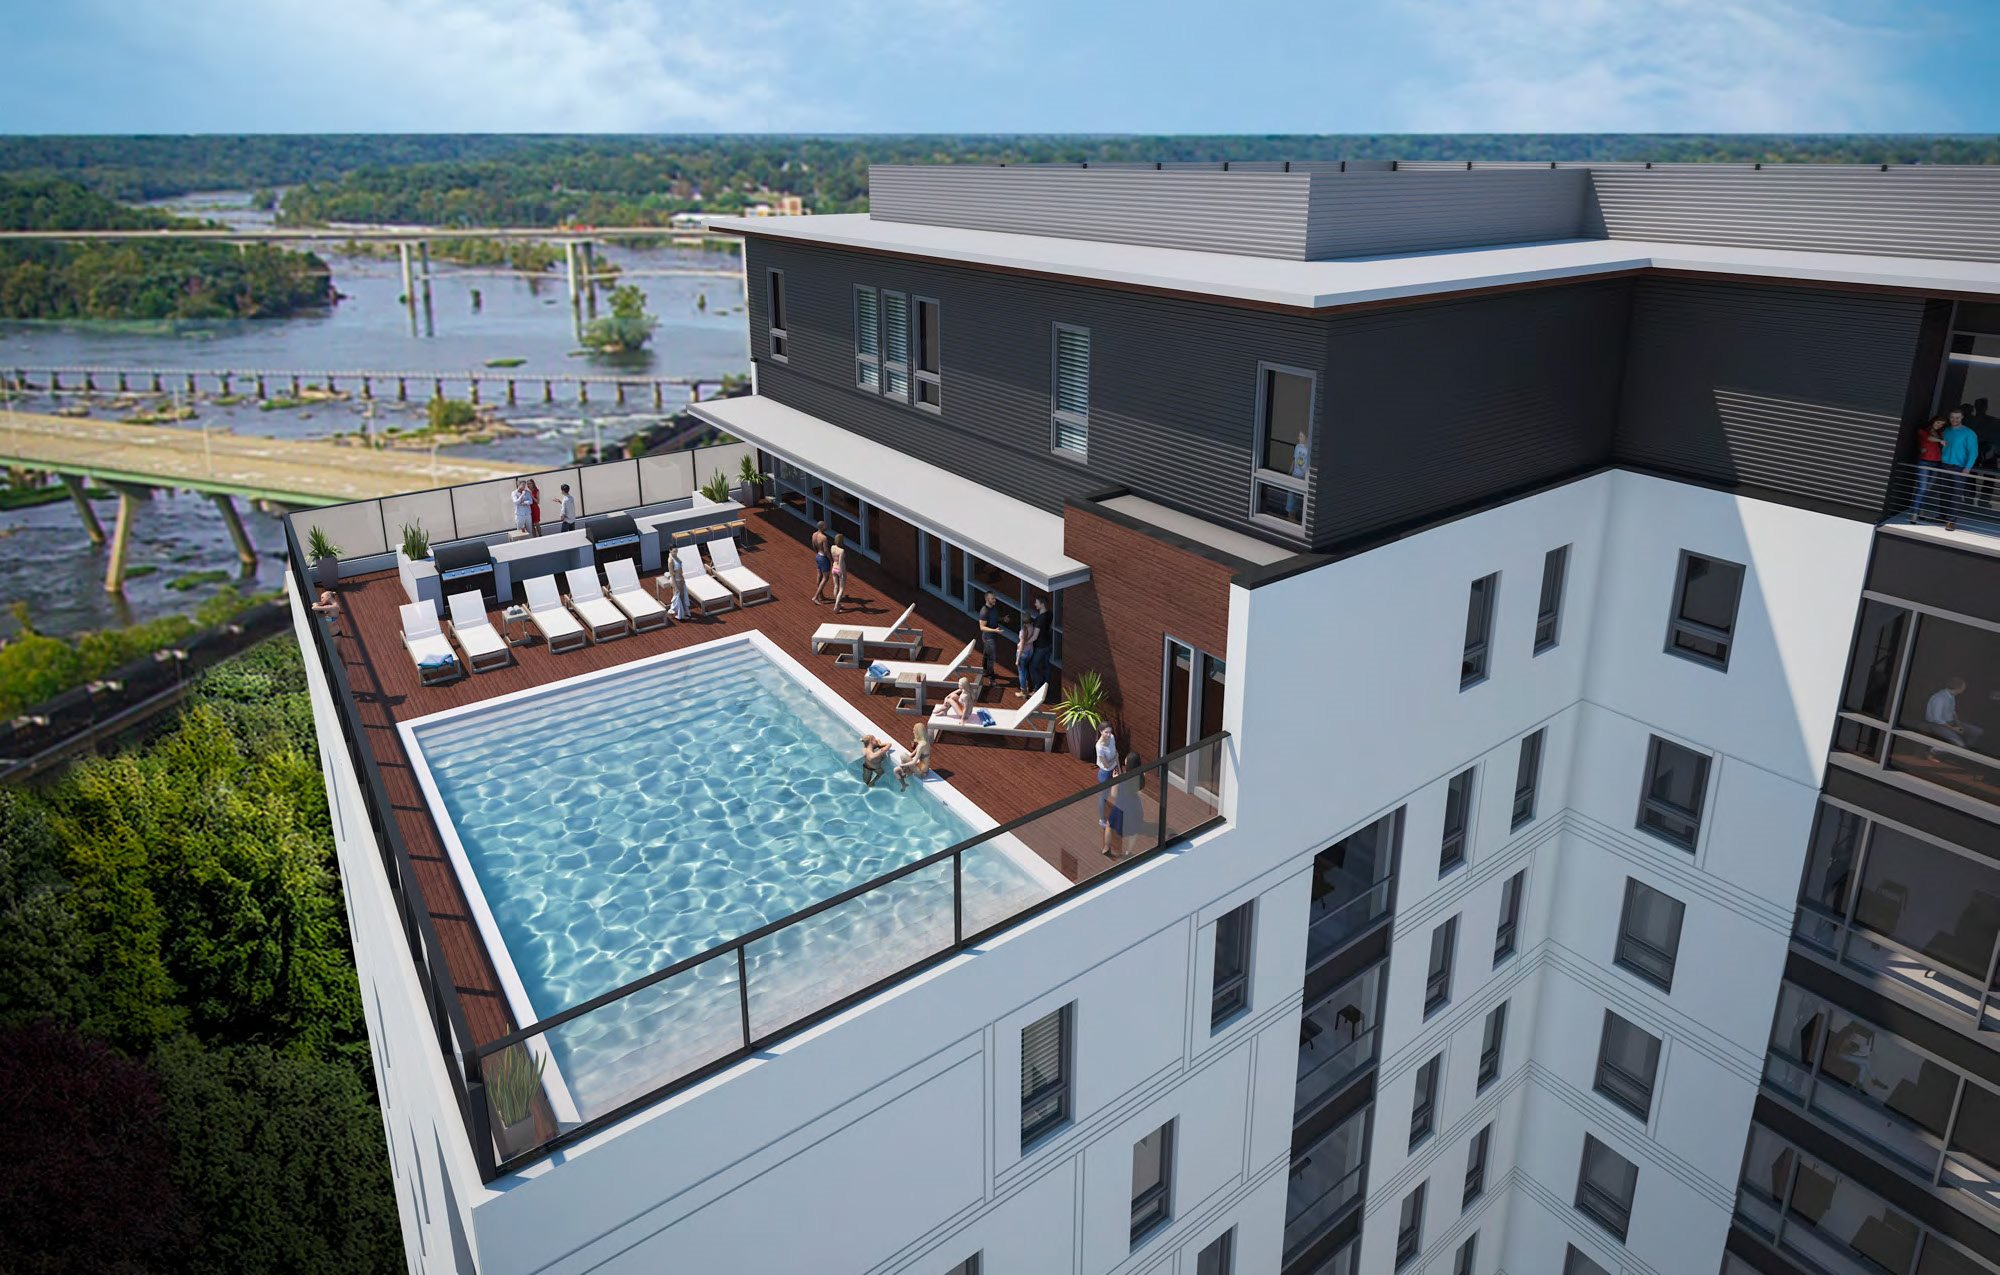 The Locks Tower's rooftop pool